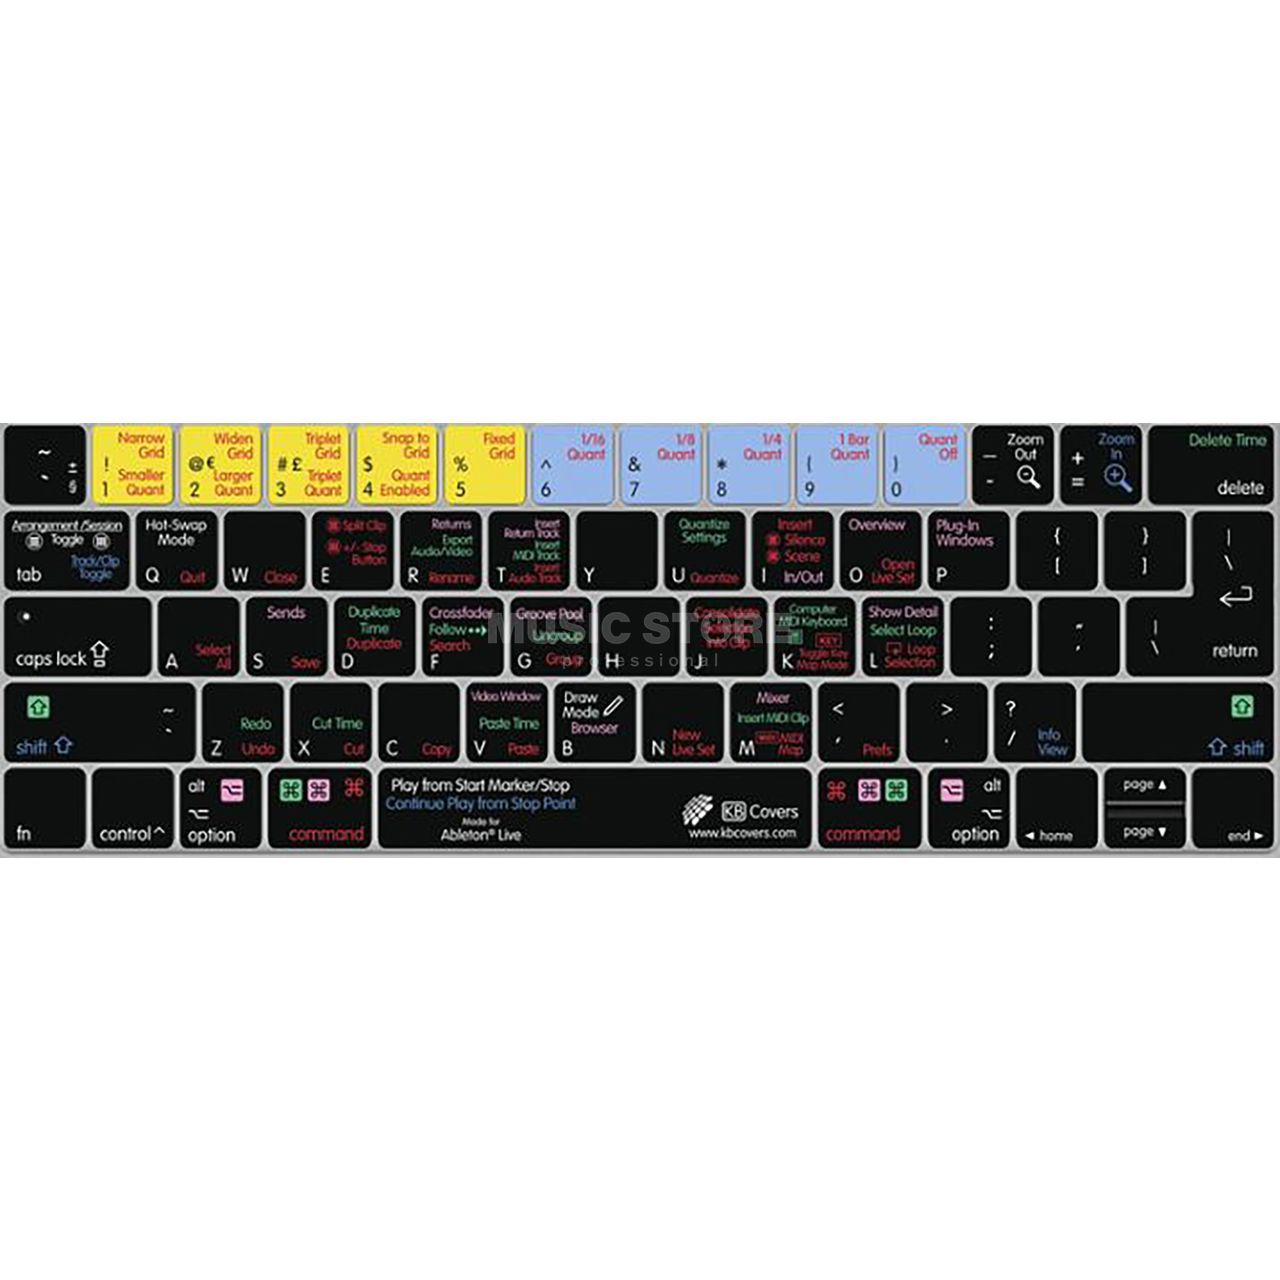 KB Covers Ableton Live Keyboard Cover for MacBook/Air 13/Pro (2008+) |  DV247 | en-GB